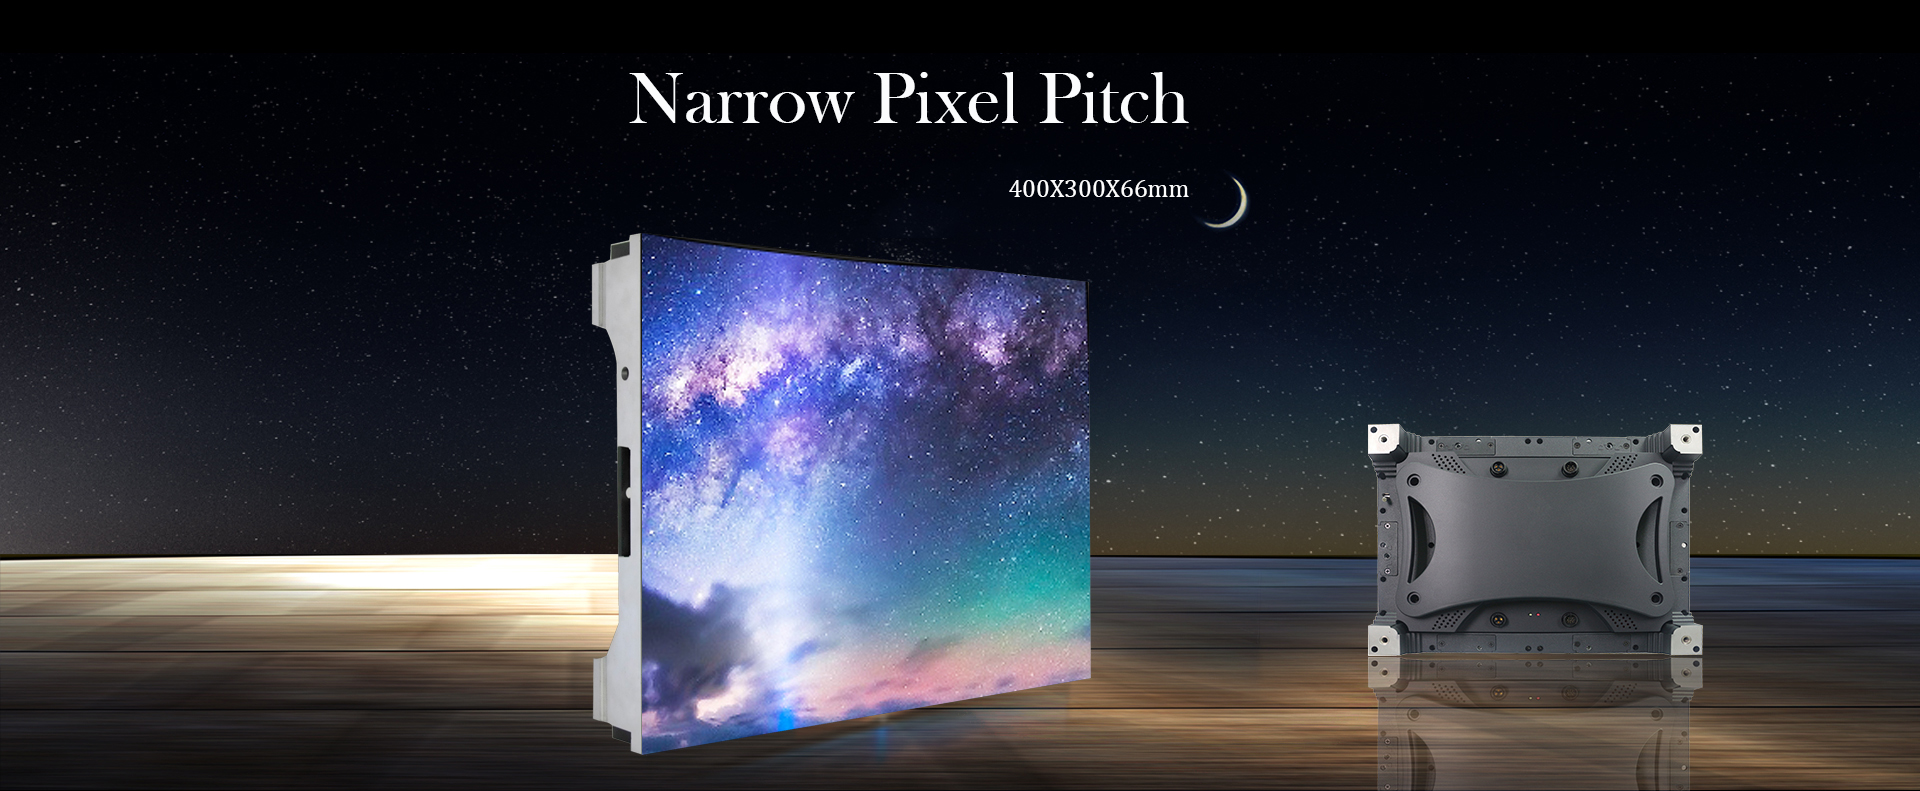 Narrow Pixel Pitch Indoor UHD led display wall